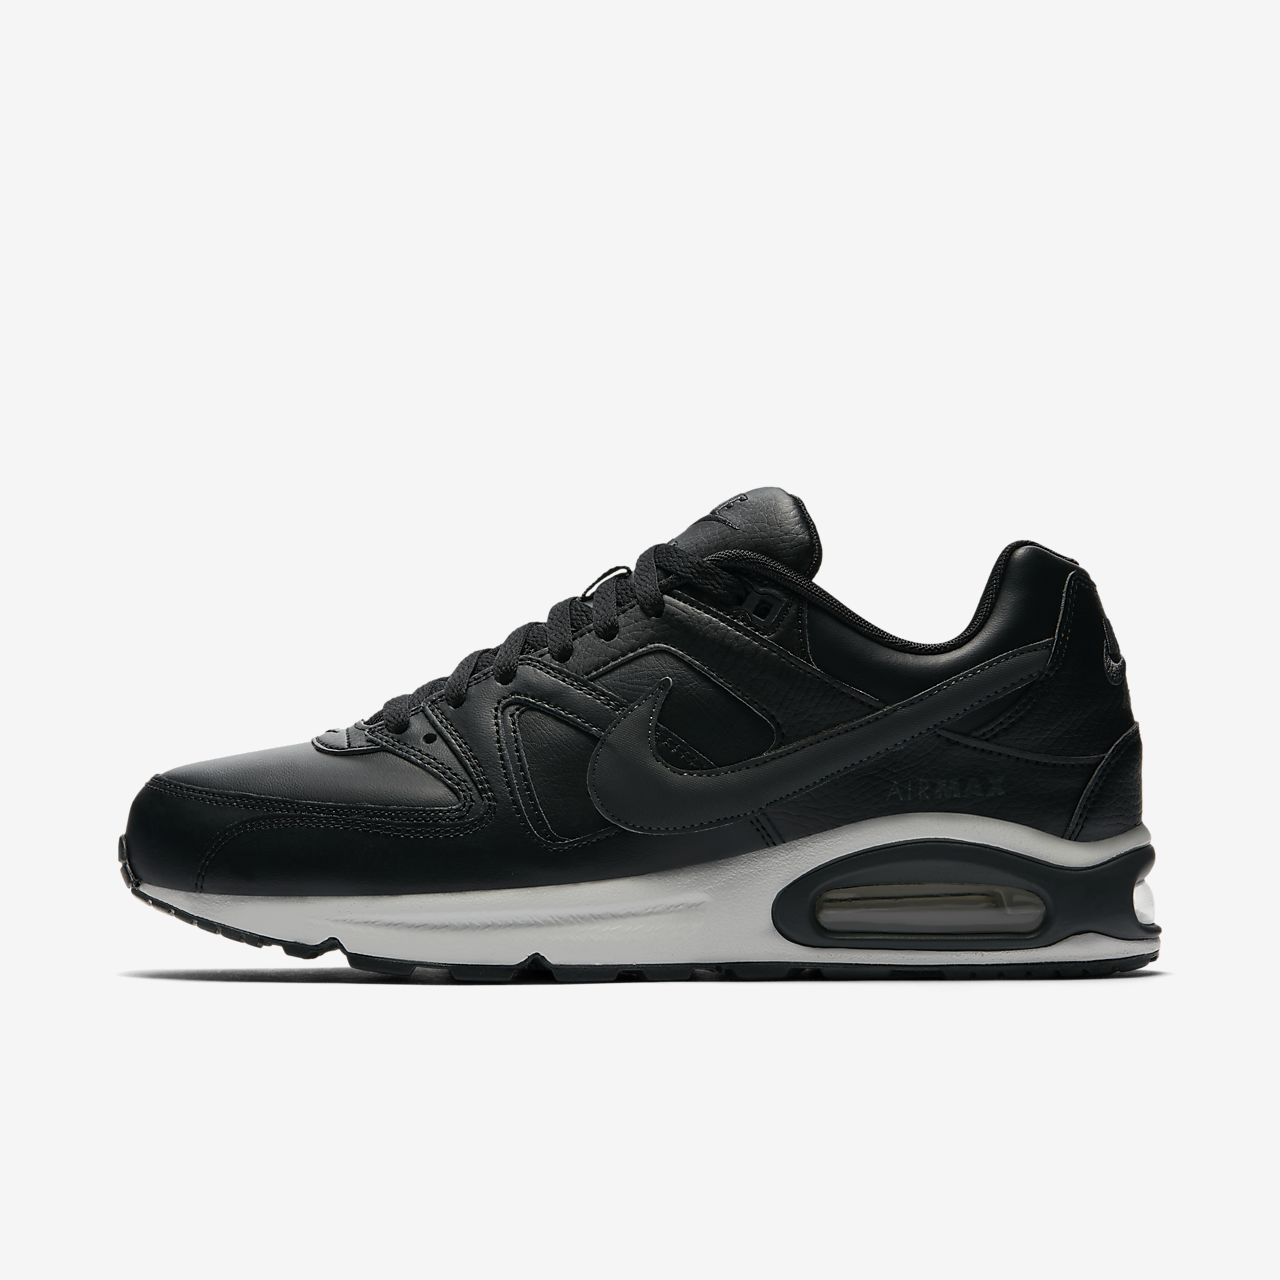 7cecadca1f5 Nike Air Max Command Men s Shoe. Nike.com NZ